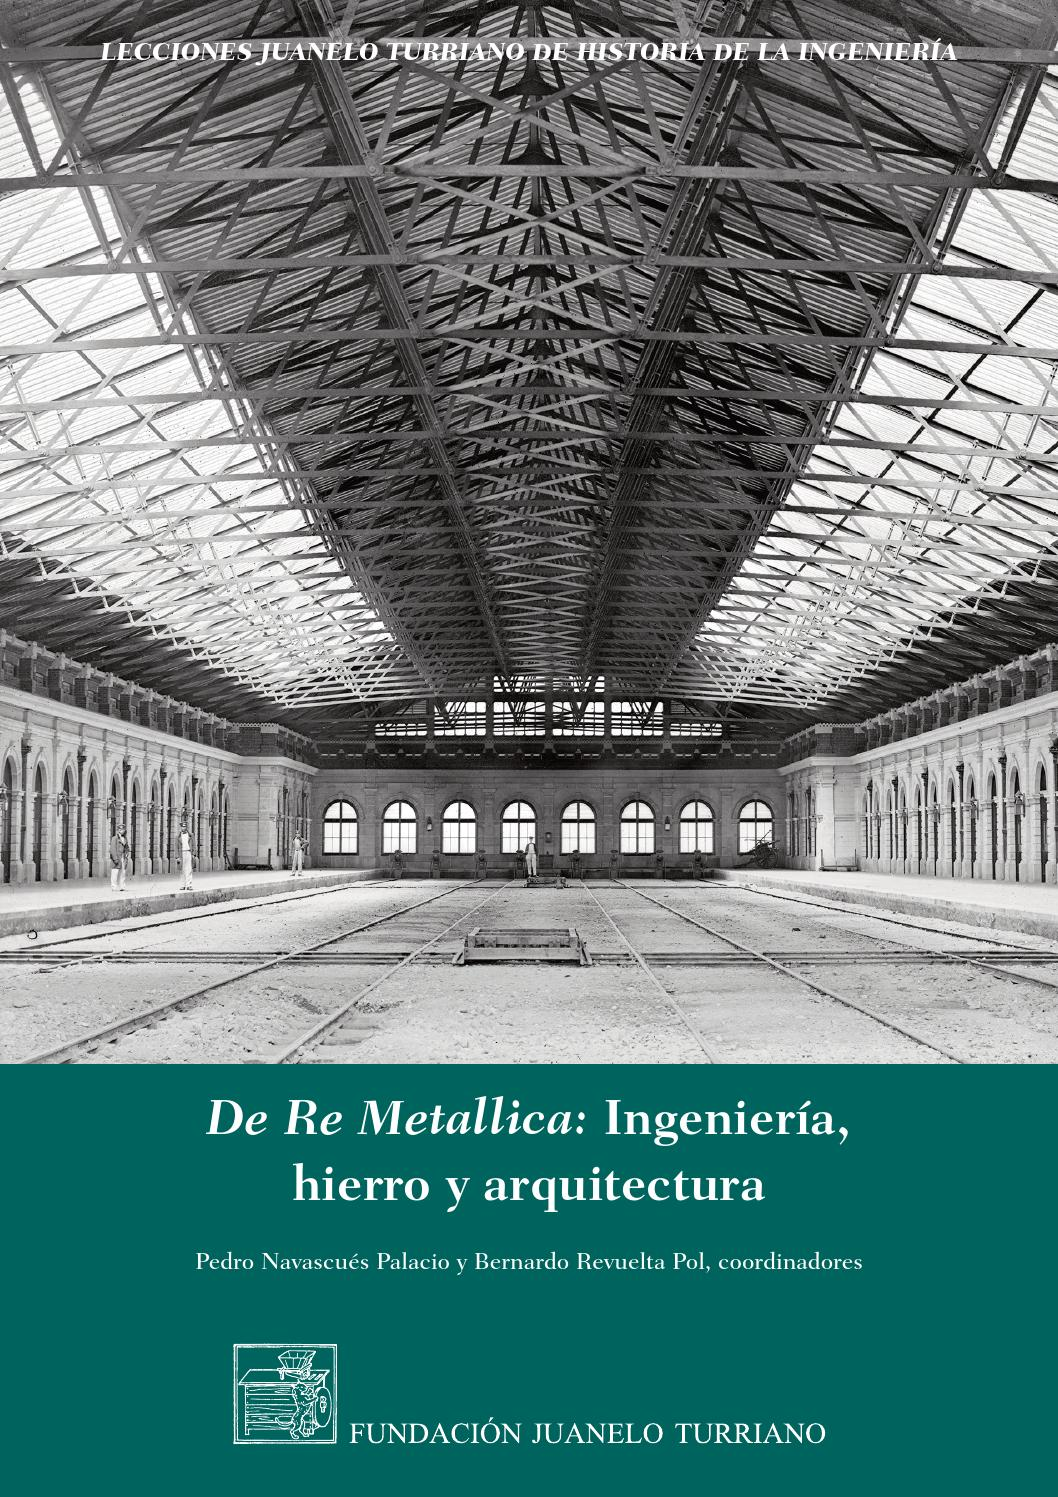 De Re Metallica: Ingeniería, hierro y arquitectura by